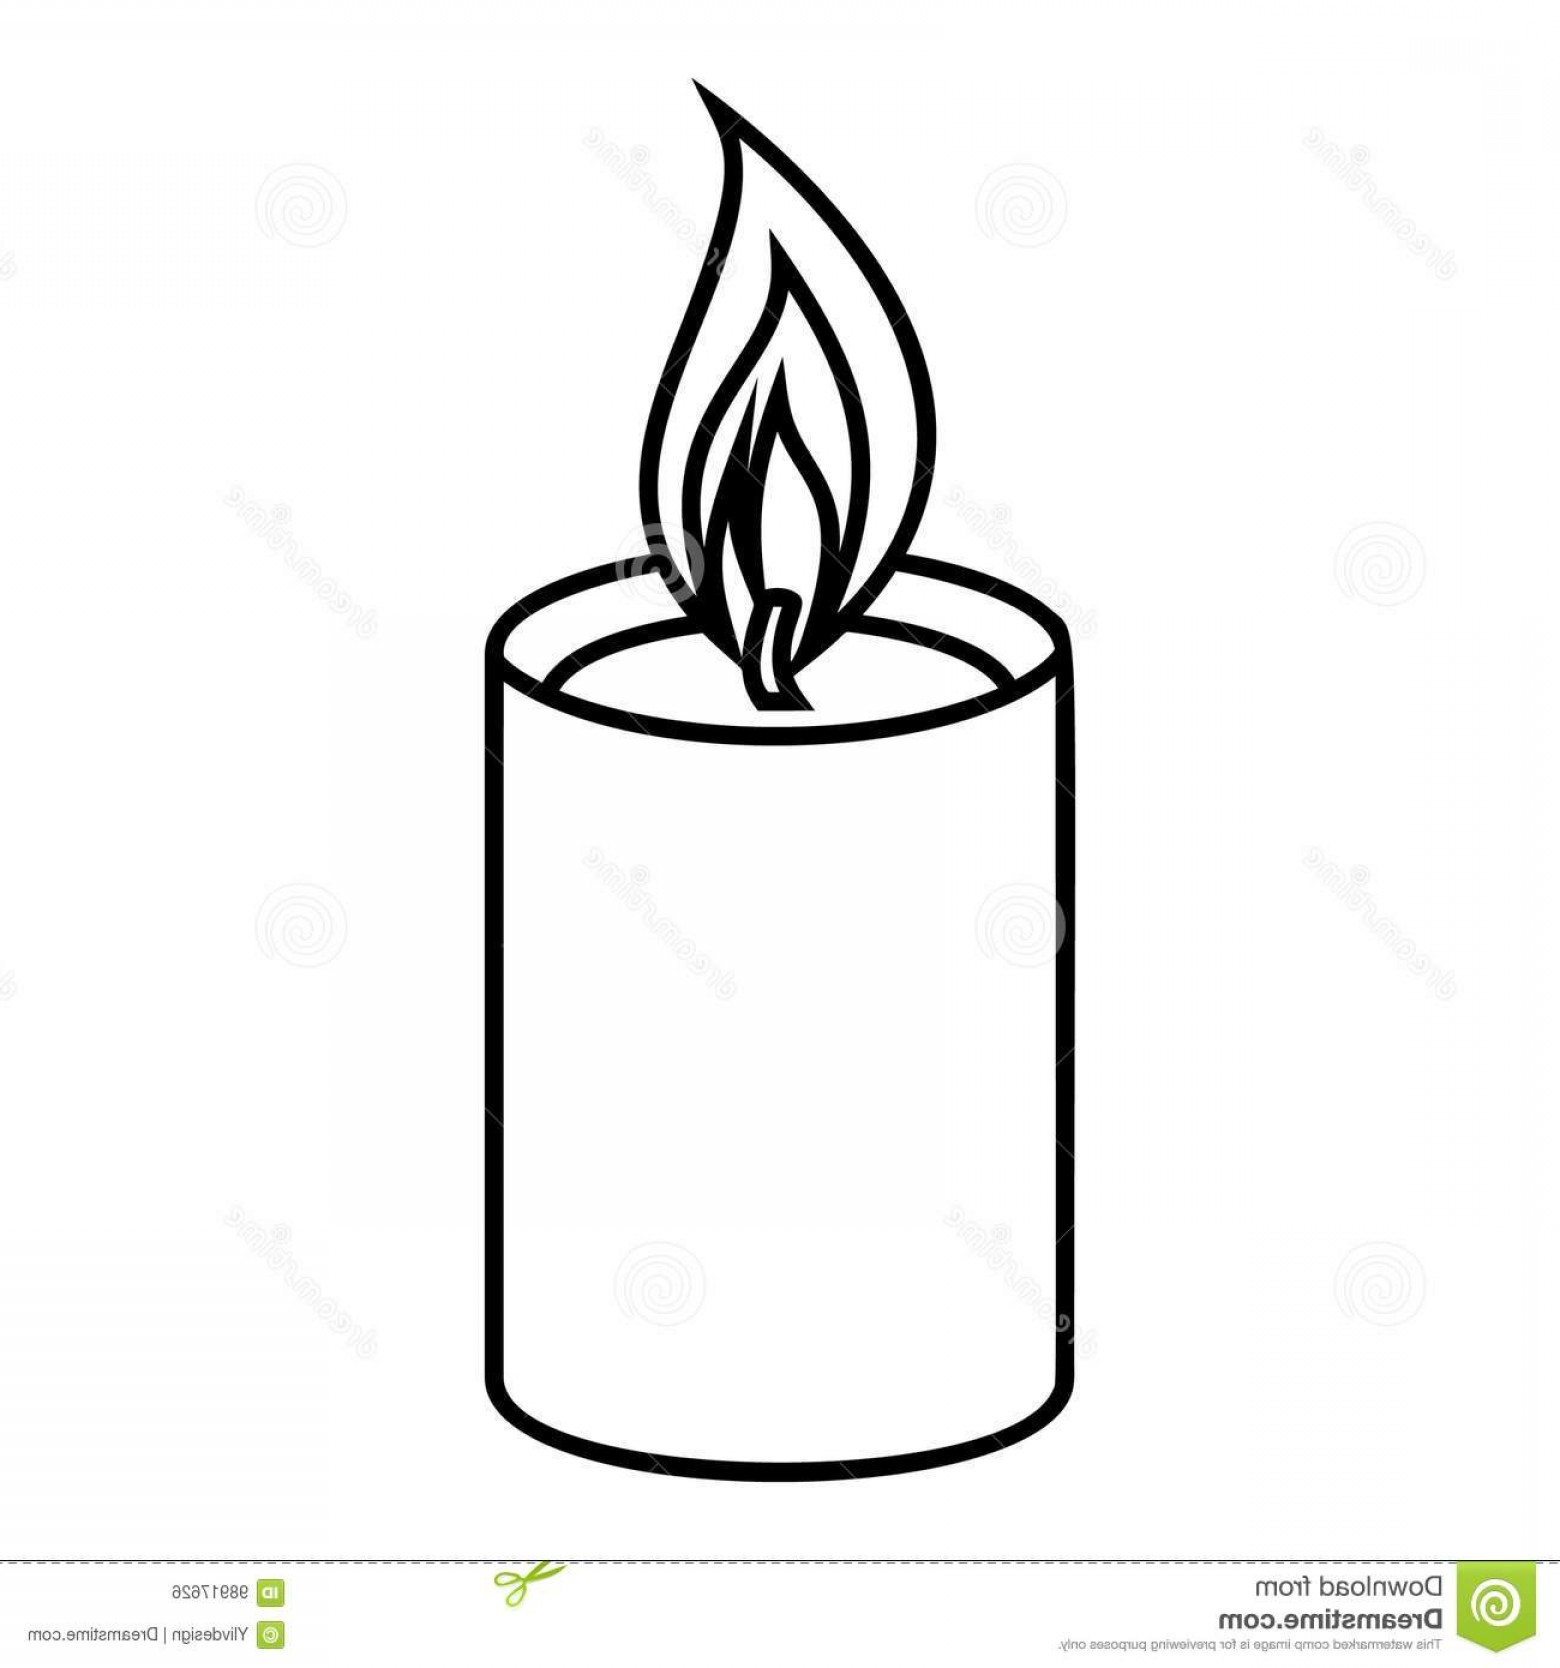 Candle Vector Black: Stock Illustration Romance Candle Icon Outline Illustration Romance Candle Vector Icon Web Romance Candle Icon Outline Style Image